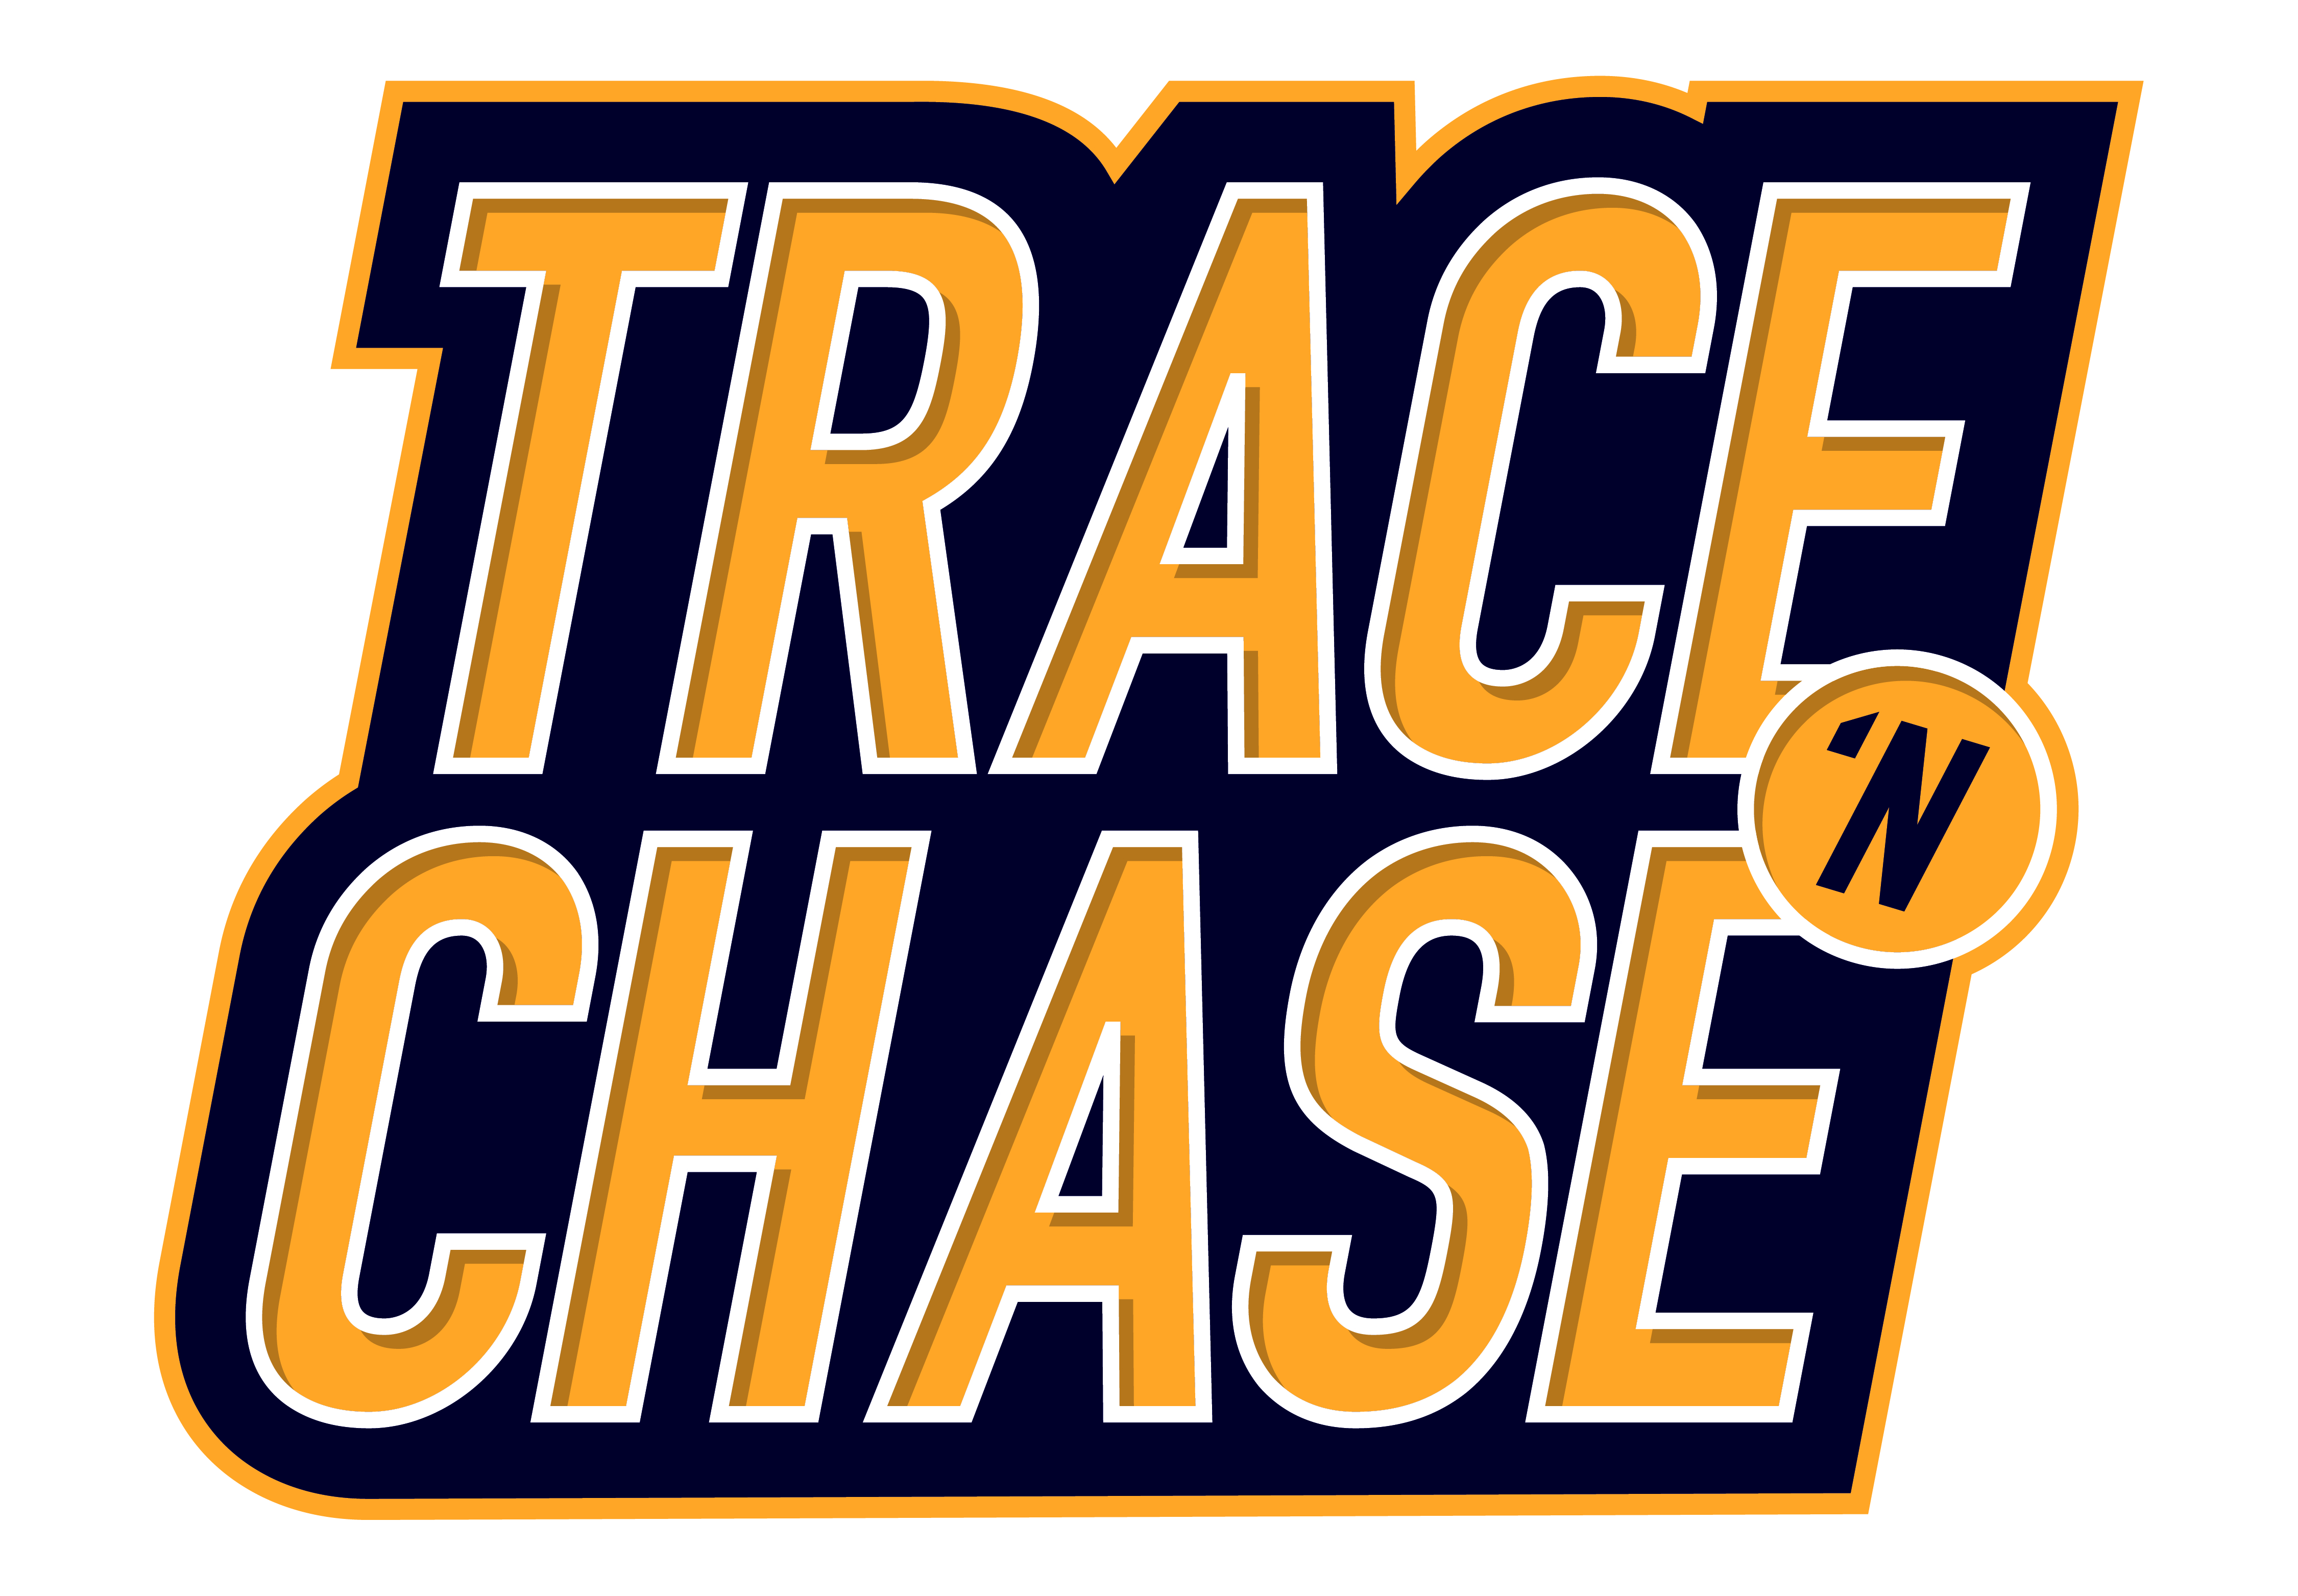 My Big Fat Greek Card Shop! Upper Deck Adds New CDD Store Trace 'n Chase in Greece